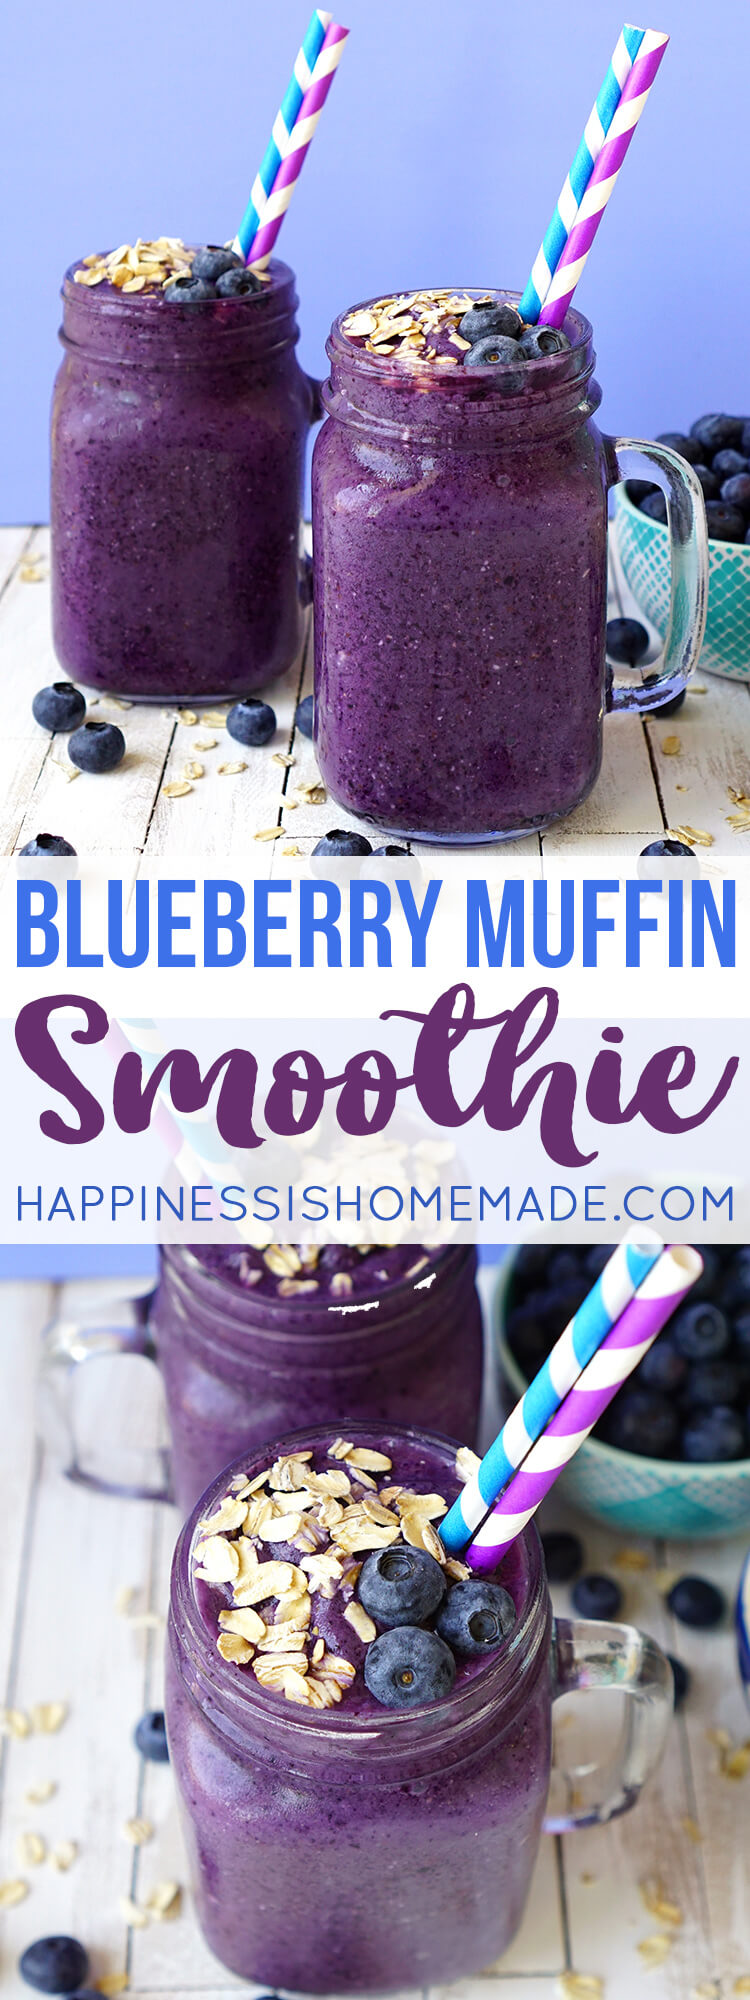 Healthy Blueberry Muffin Smoothie Recipe Happiness Is